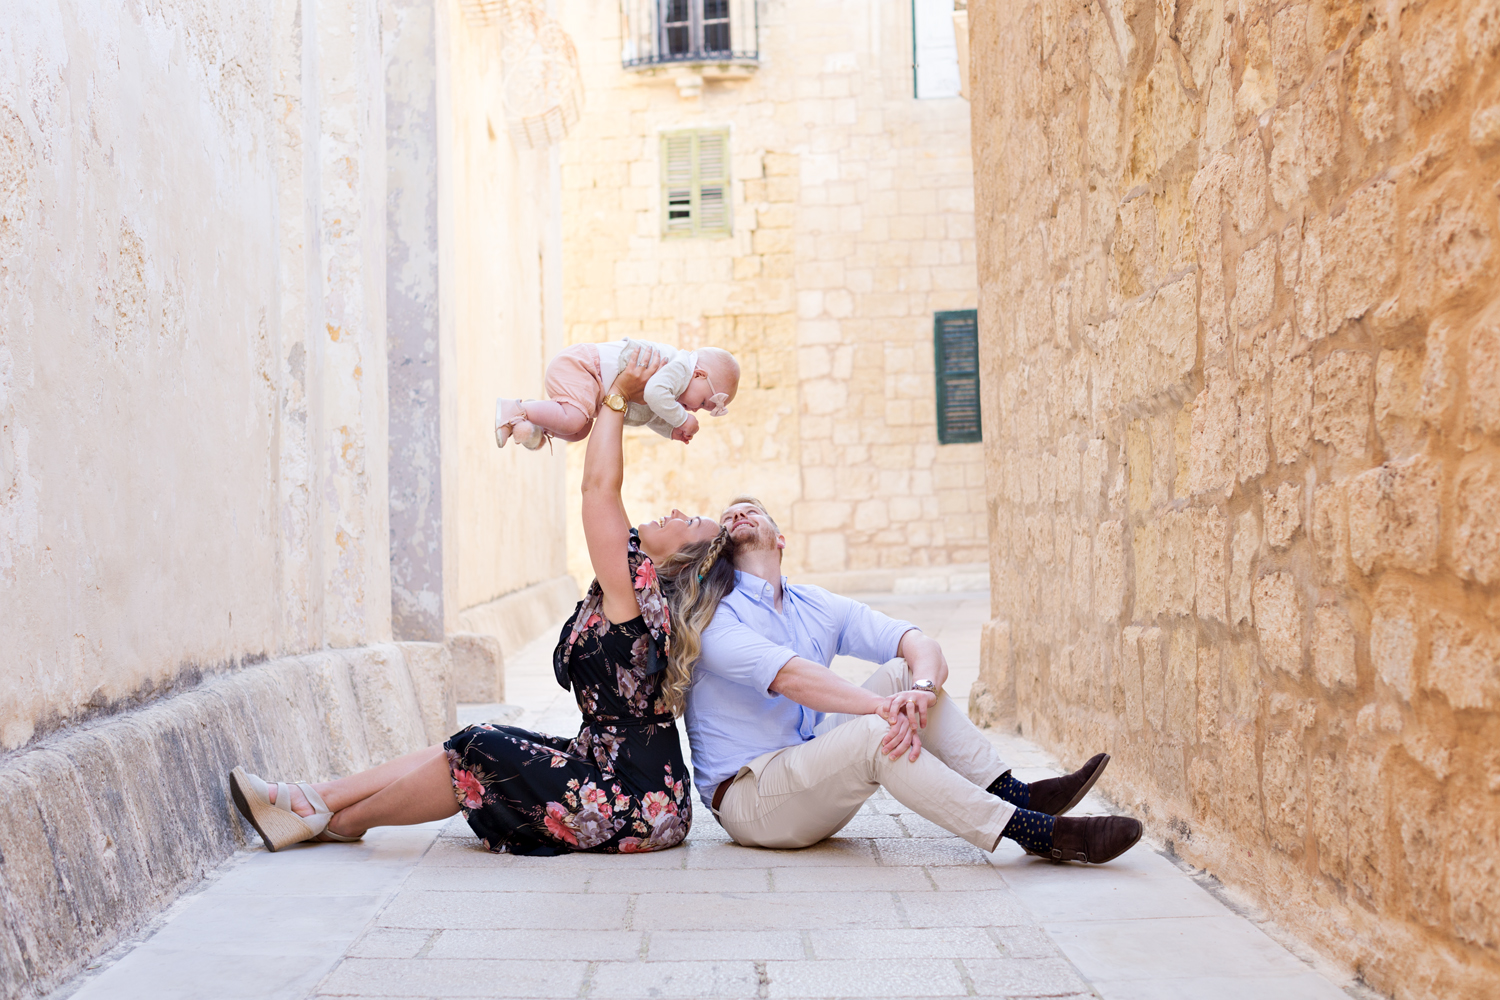 family posing, family photo session malta, toddler, swedish photographer malta, maltafamily, living in malta, outdoor photography